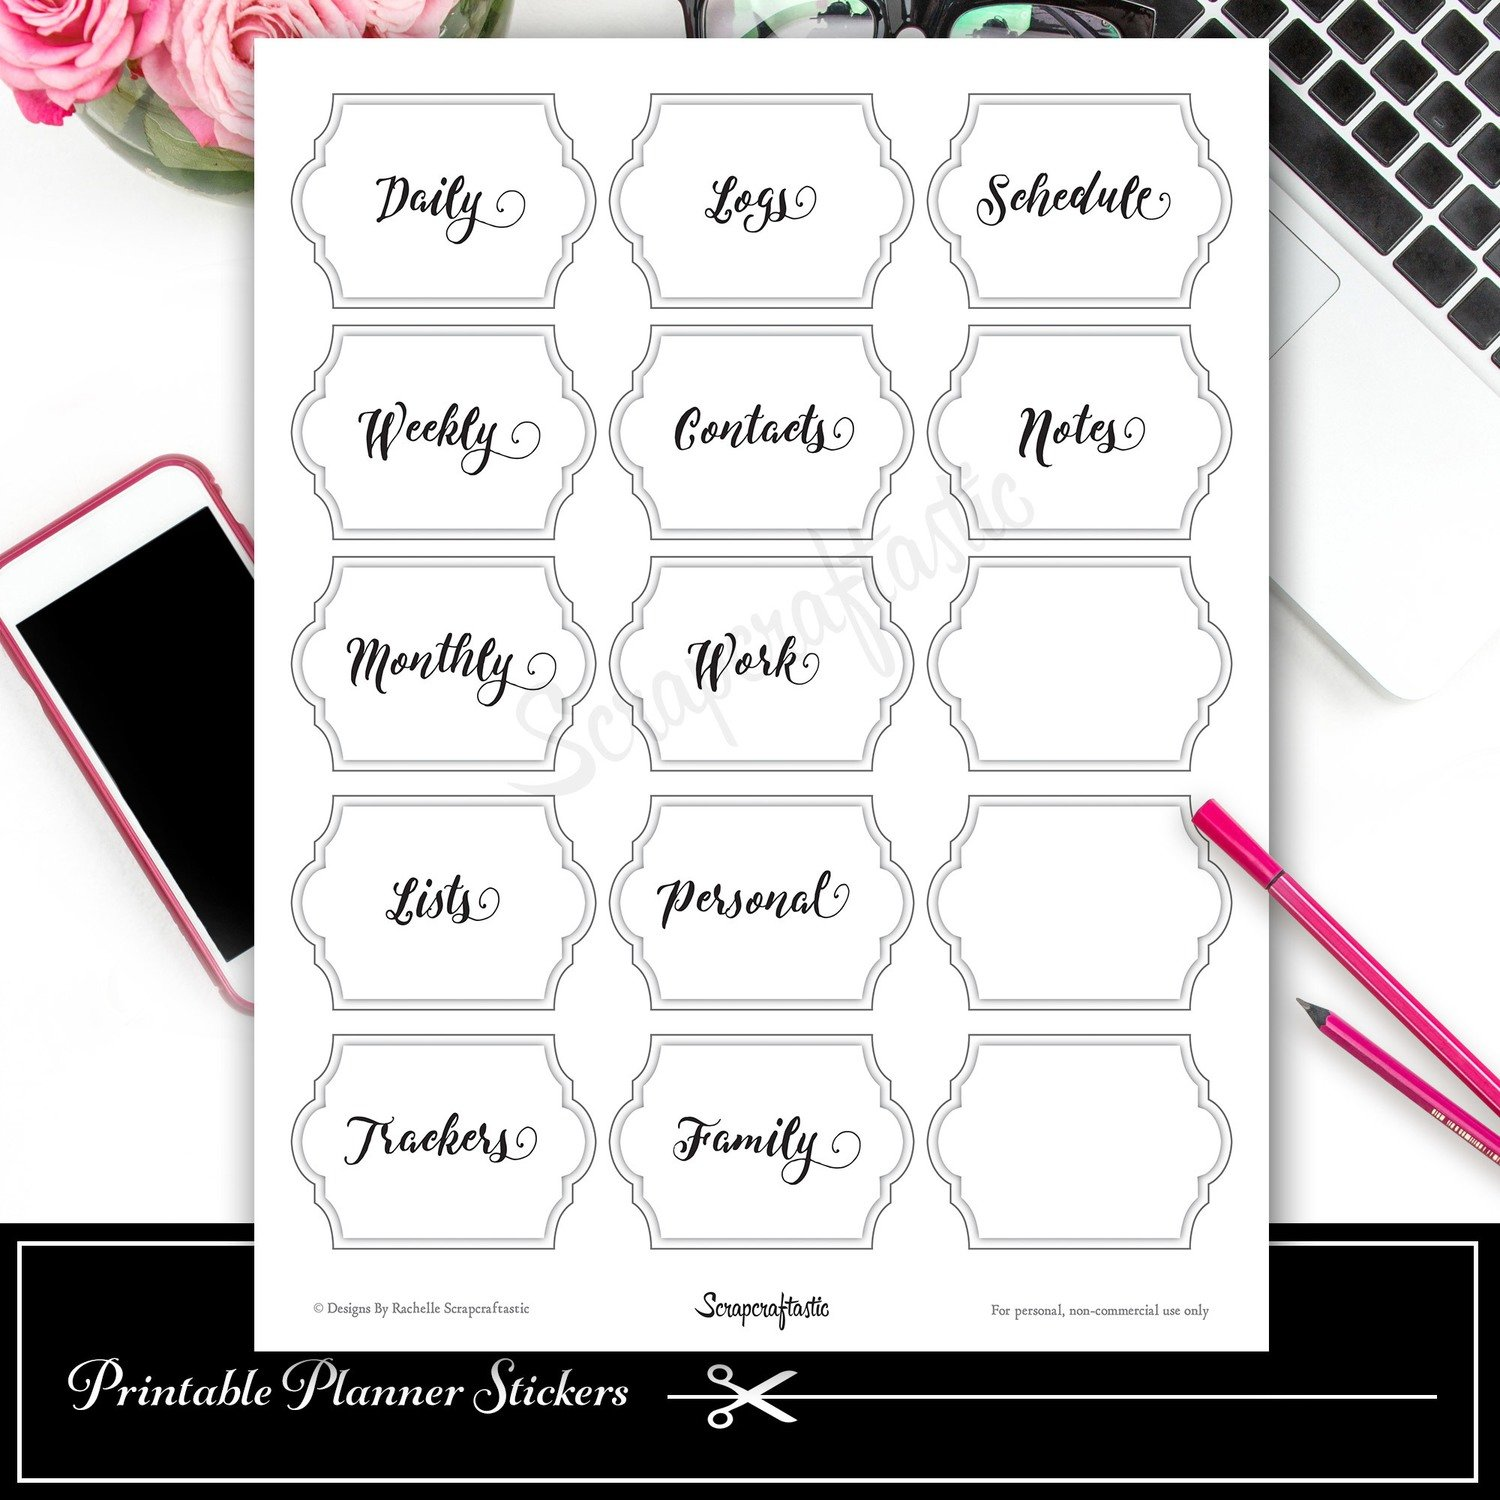 Signature Label Set #1 Printable Planner Stickers and Silhouette Cut File